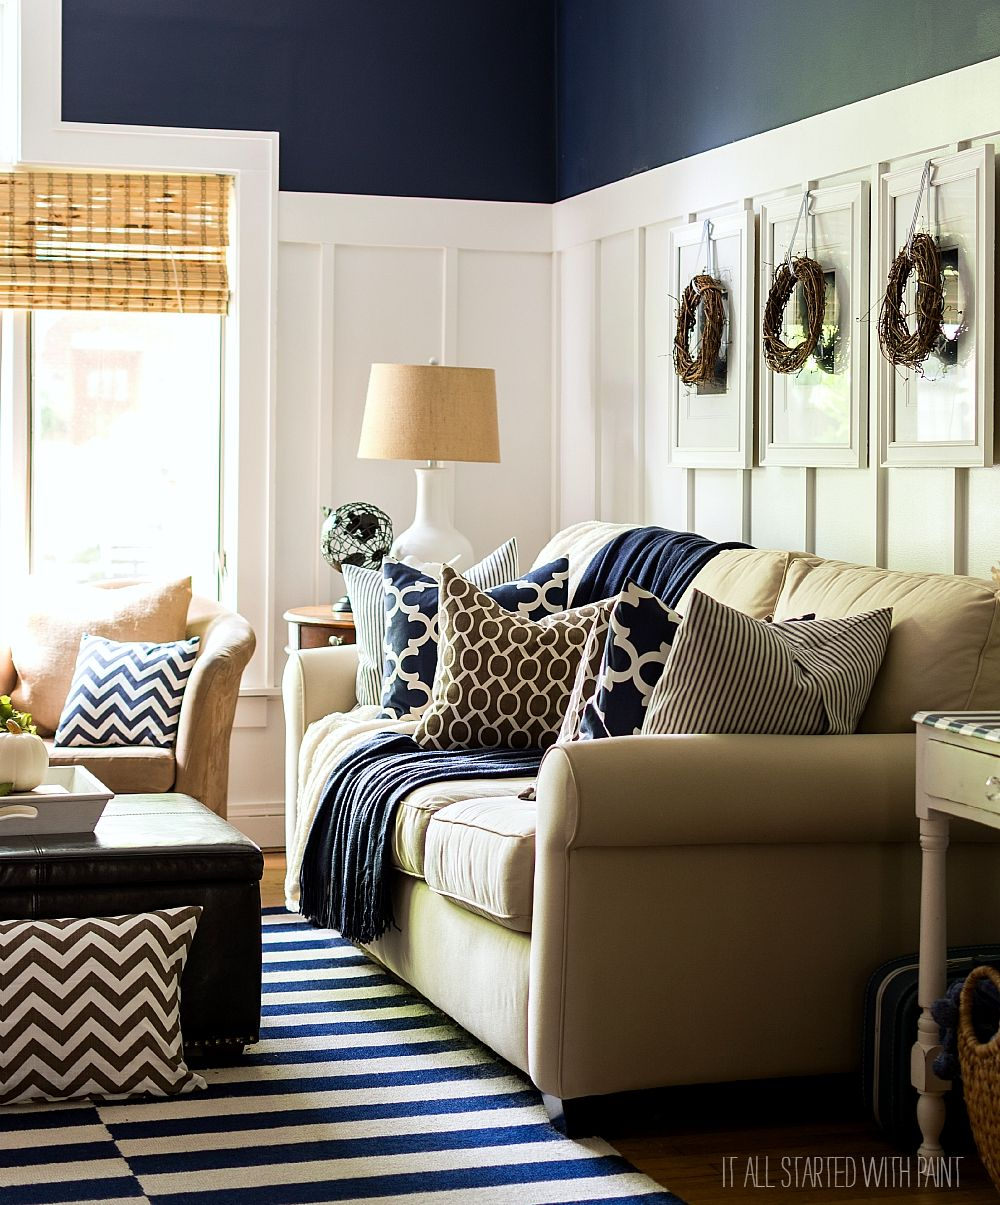 Living Room Blue Decorating Ideas Window Treatments 2016 Fall Decor In Navy And Favorite Finds Using Brown Neutrals Board Batten Decorated For